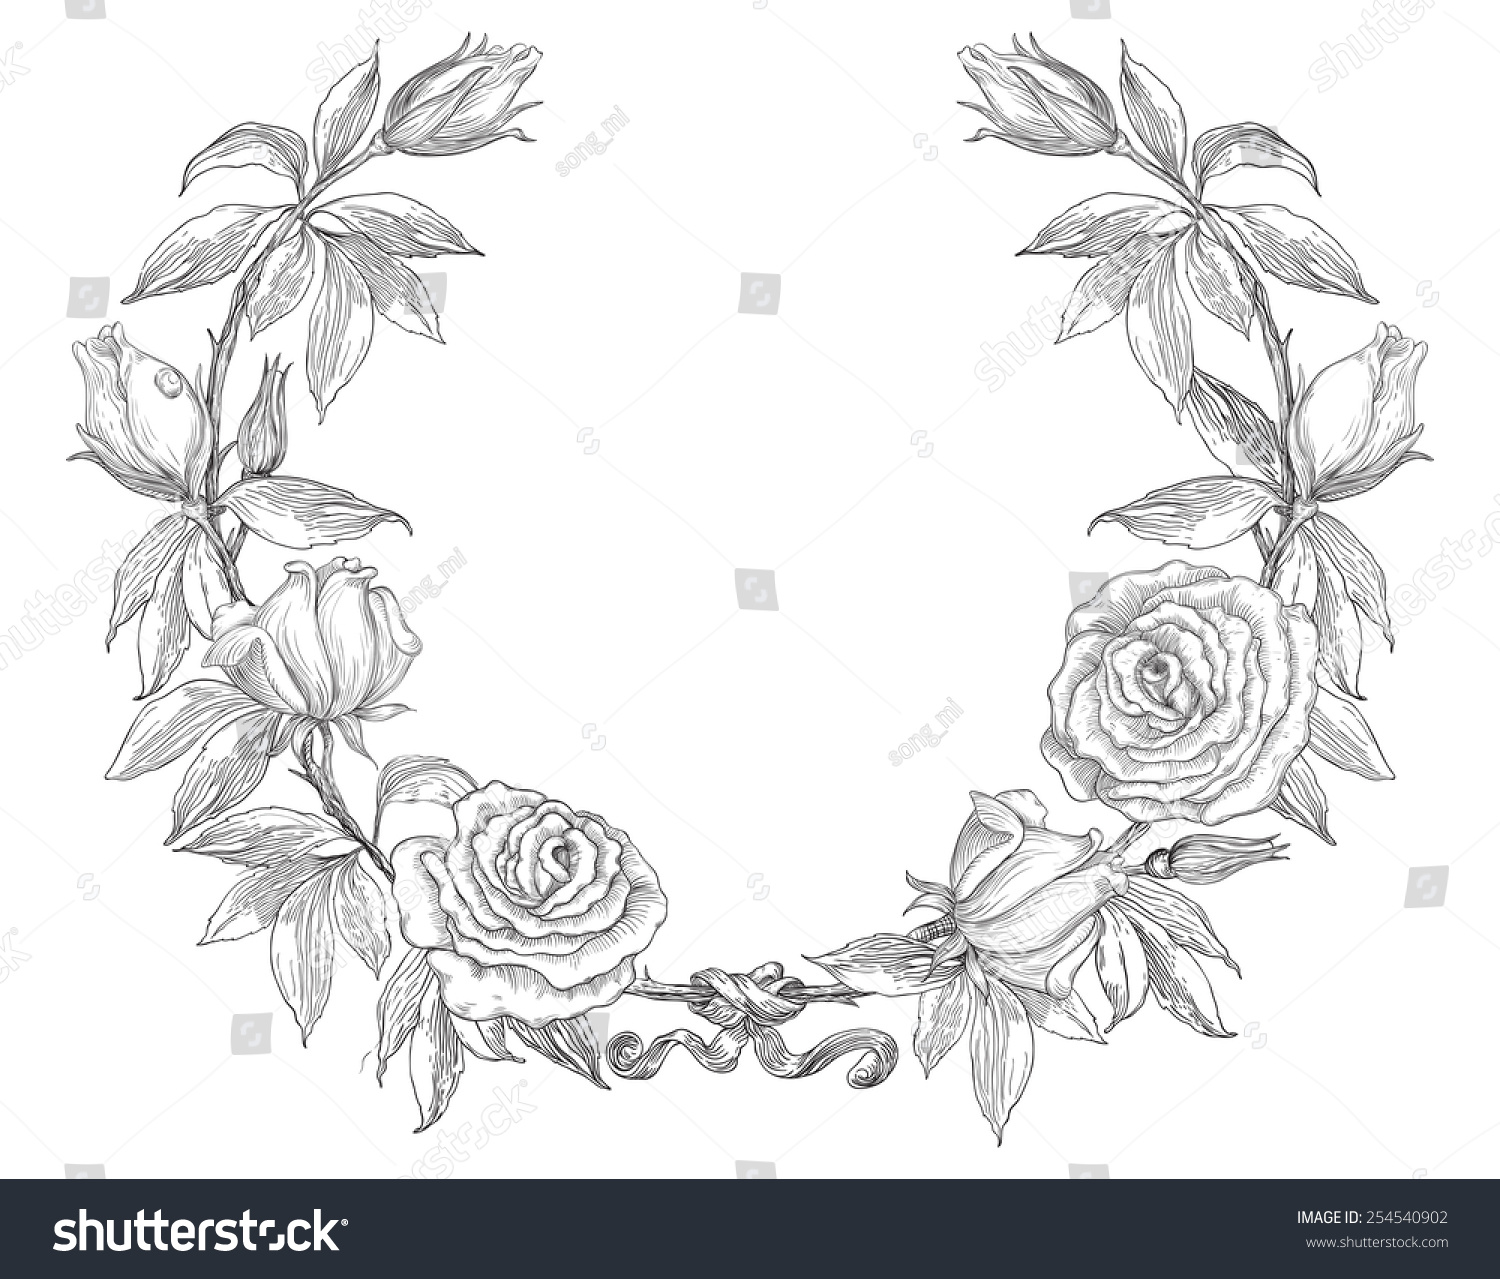 Black and white floral wreath stock vector image 65241515 -  Vector Image 65241515 Black And White Floral Wreath Stock Download